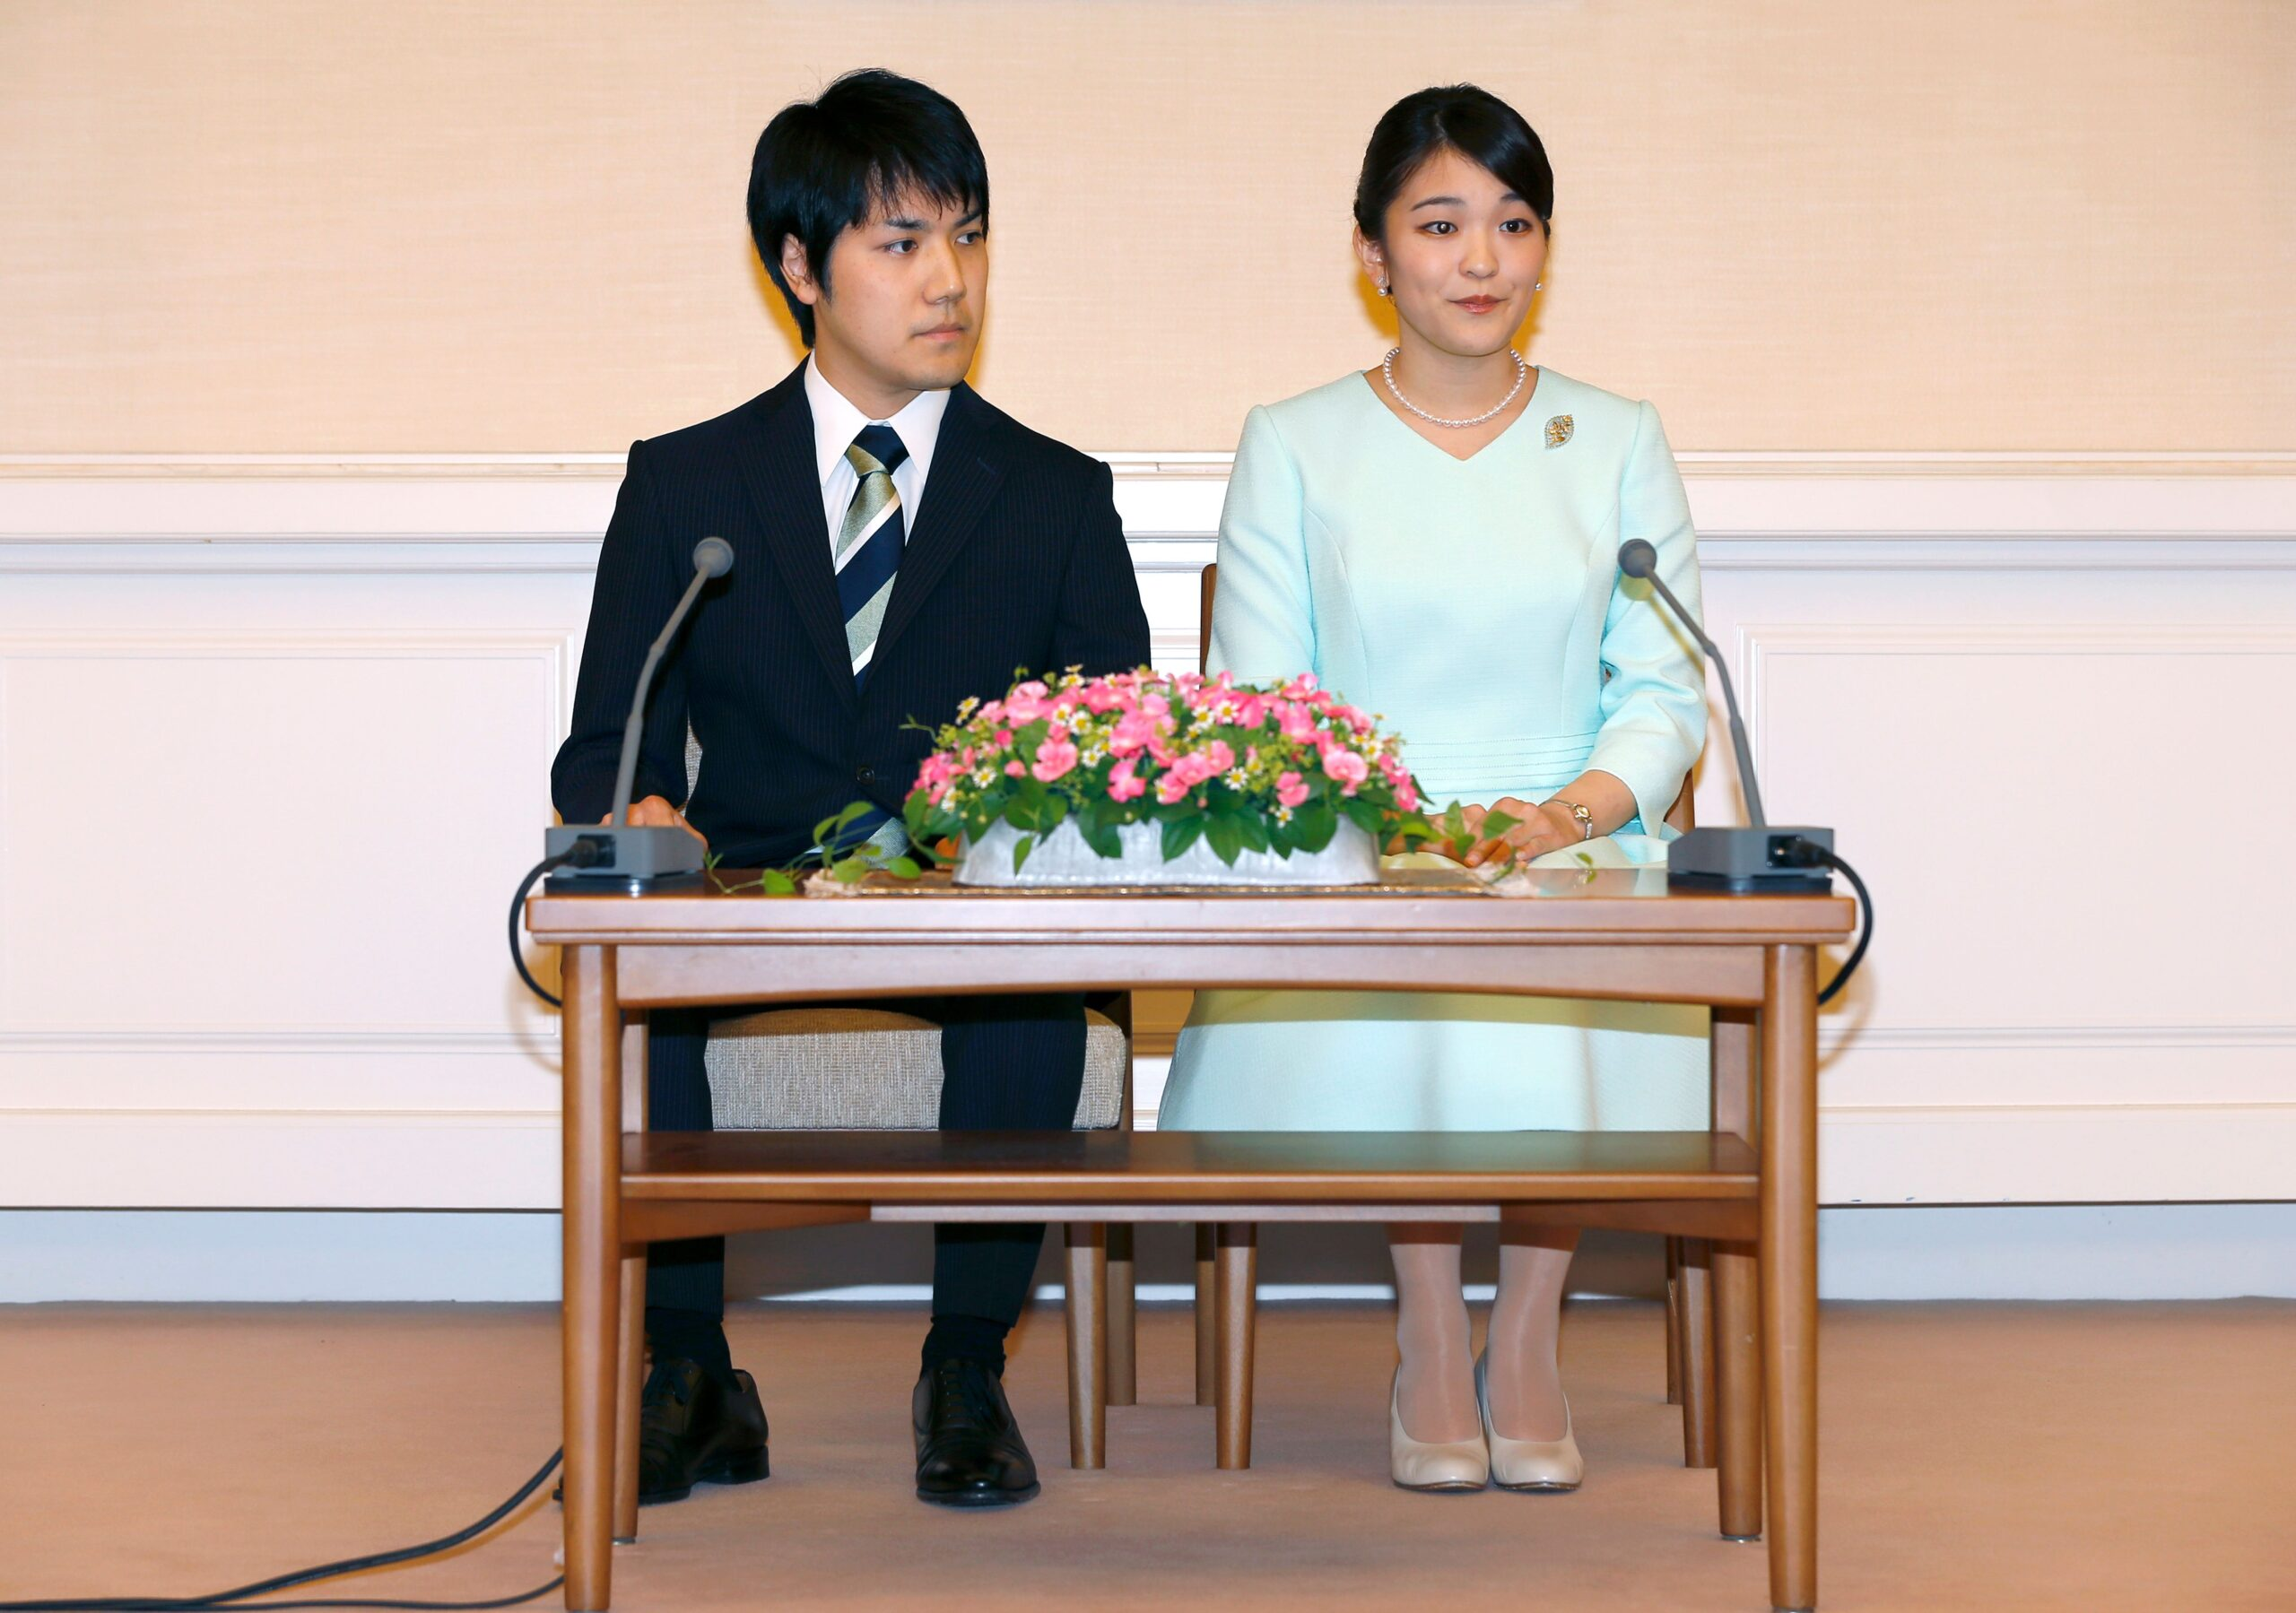 Kei Komuro on the left, Princess Mako on the right, sitting a small table announcing their engagement.